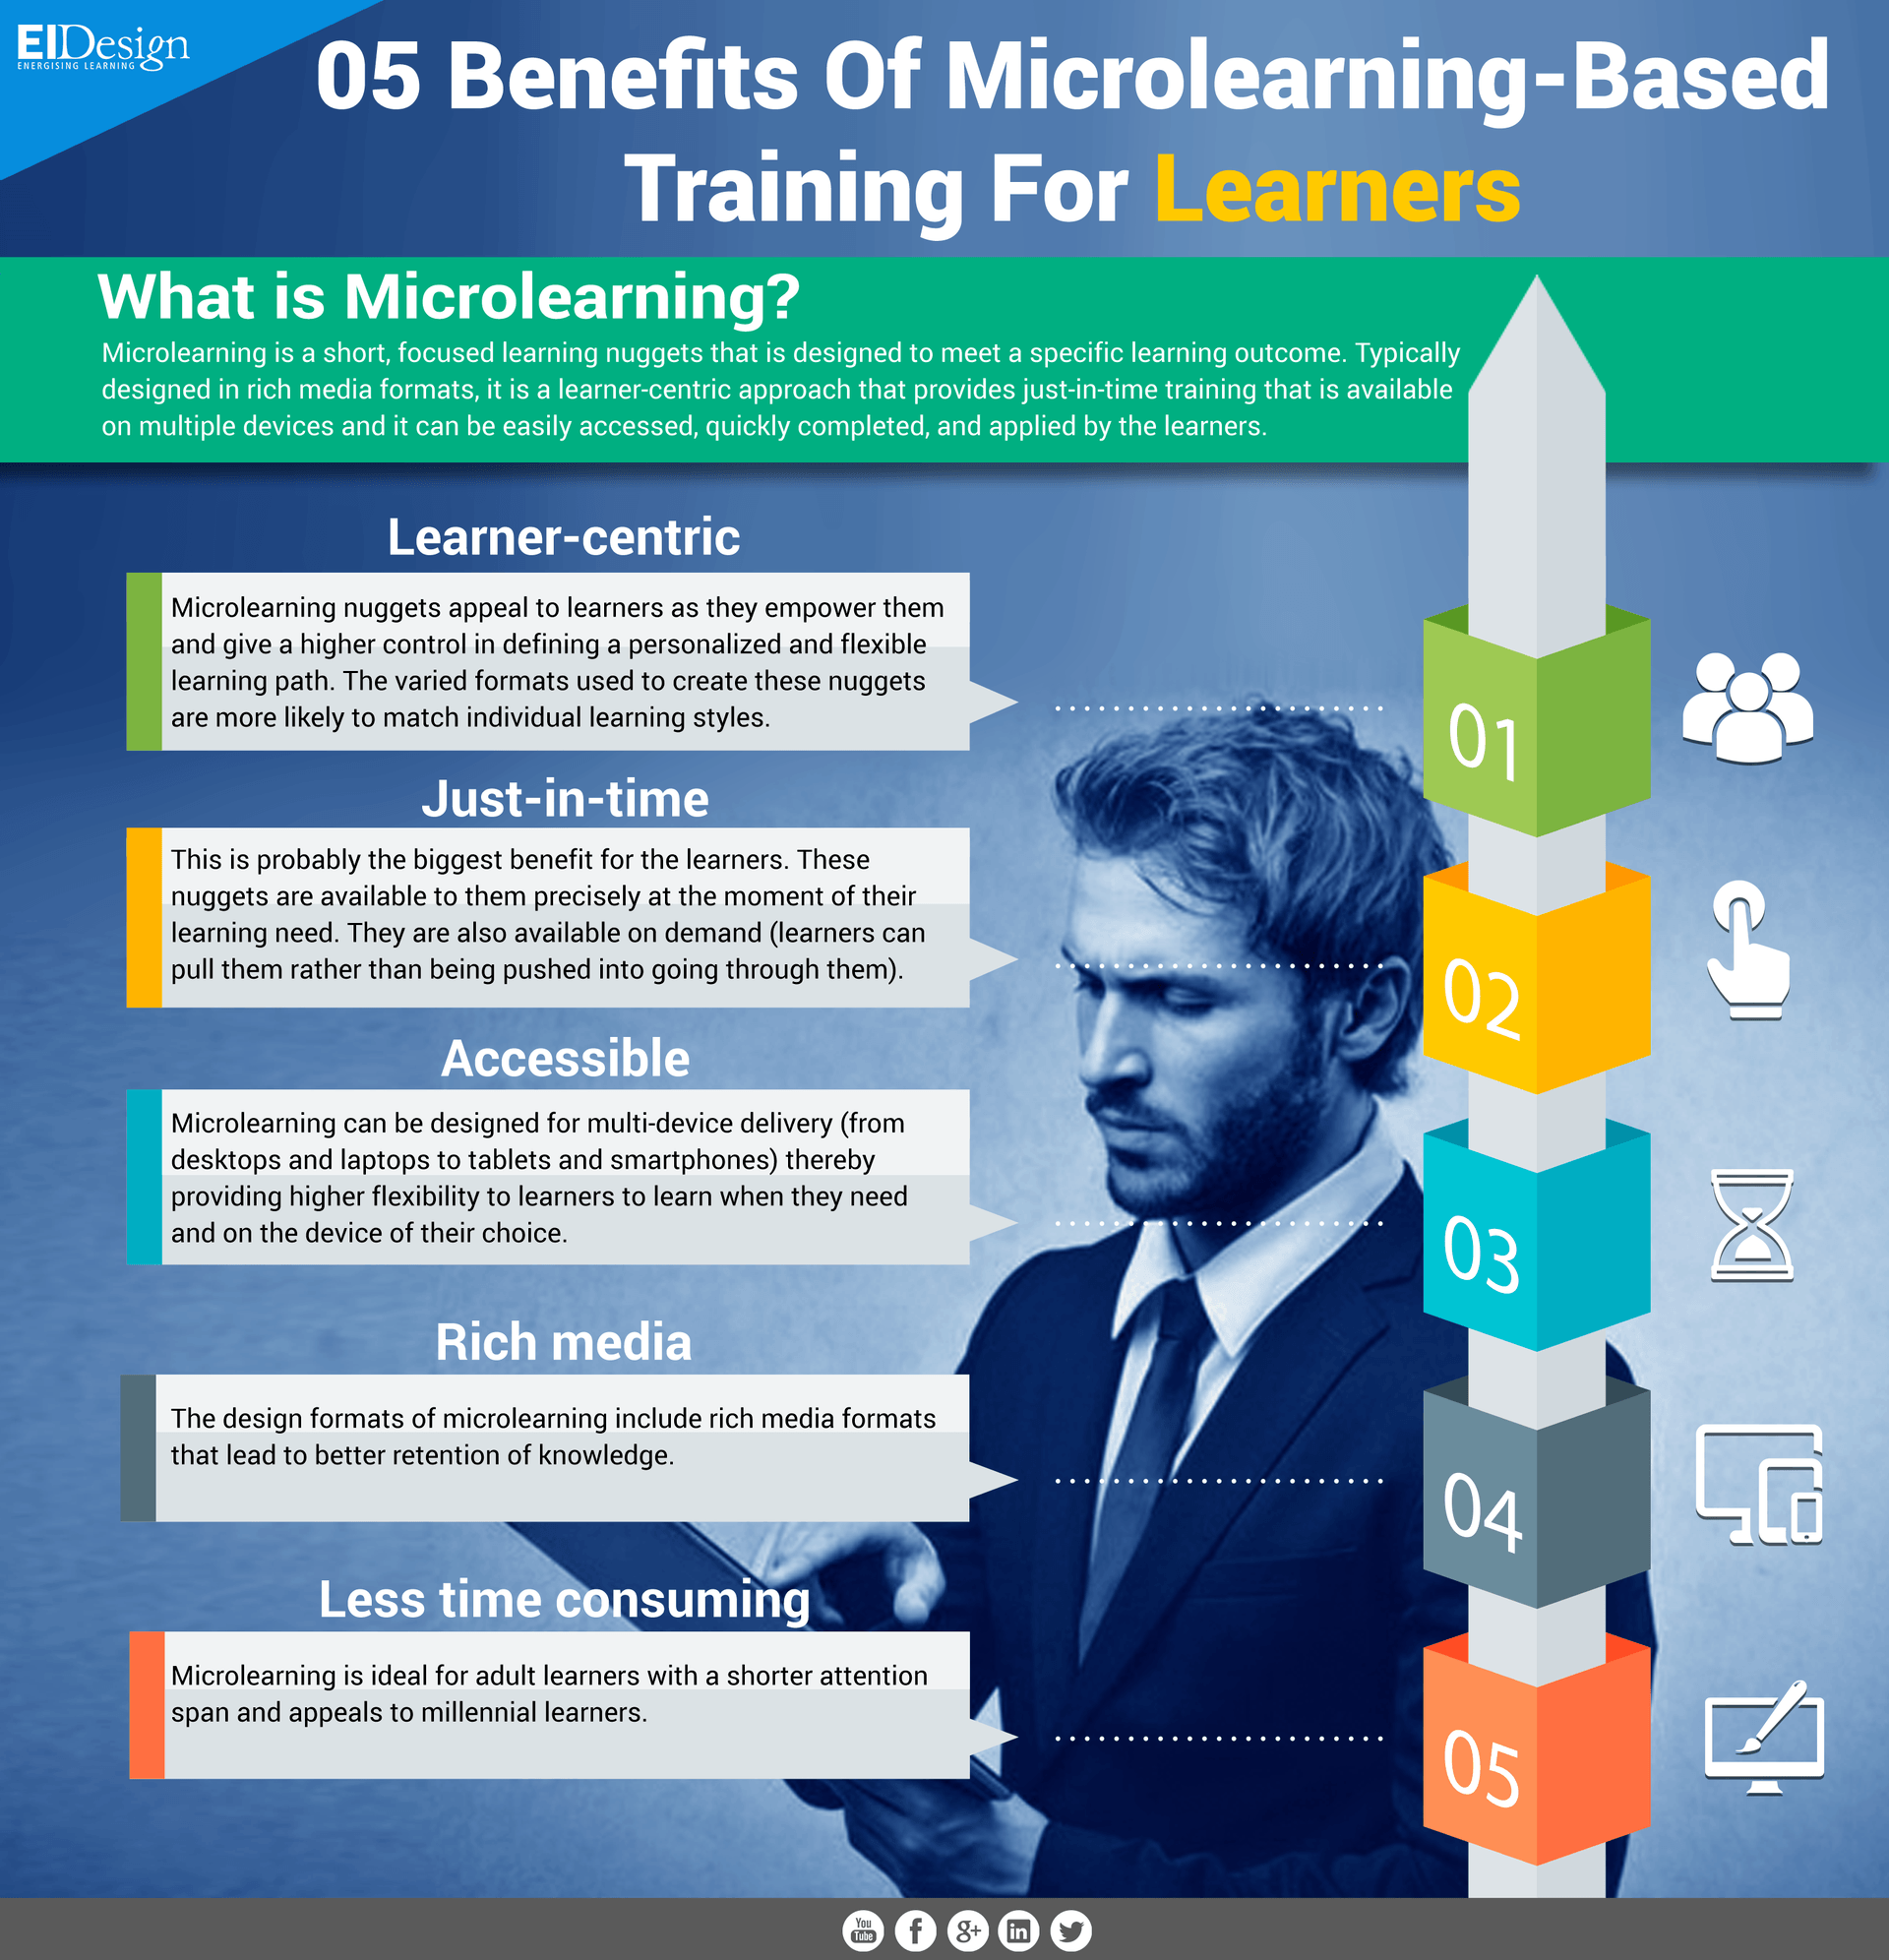 5 Benefits Of Microlearning Based Training For Learners Infographic